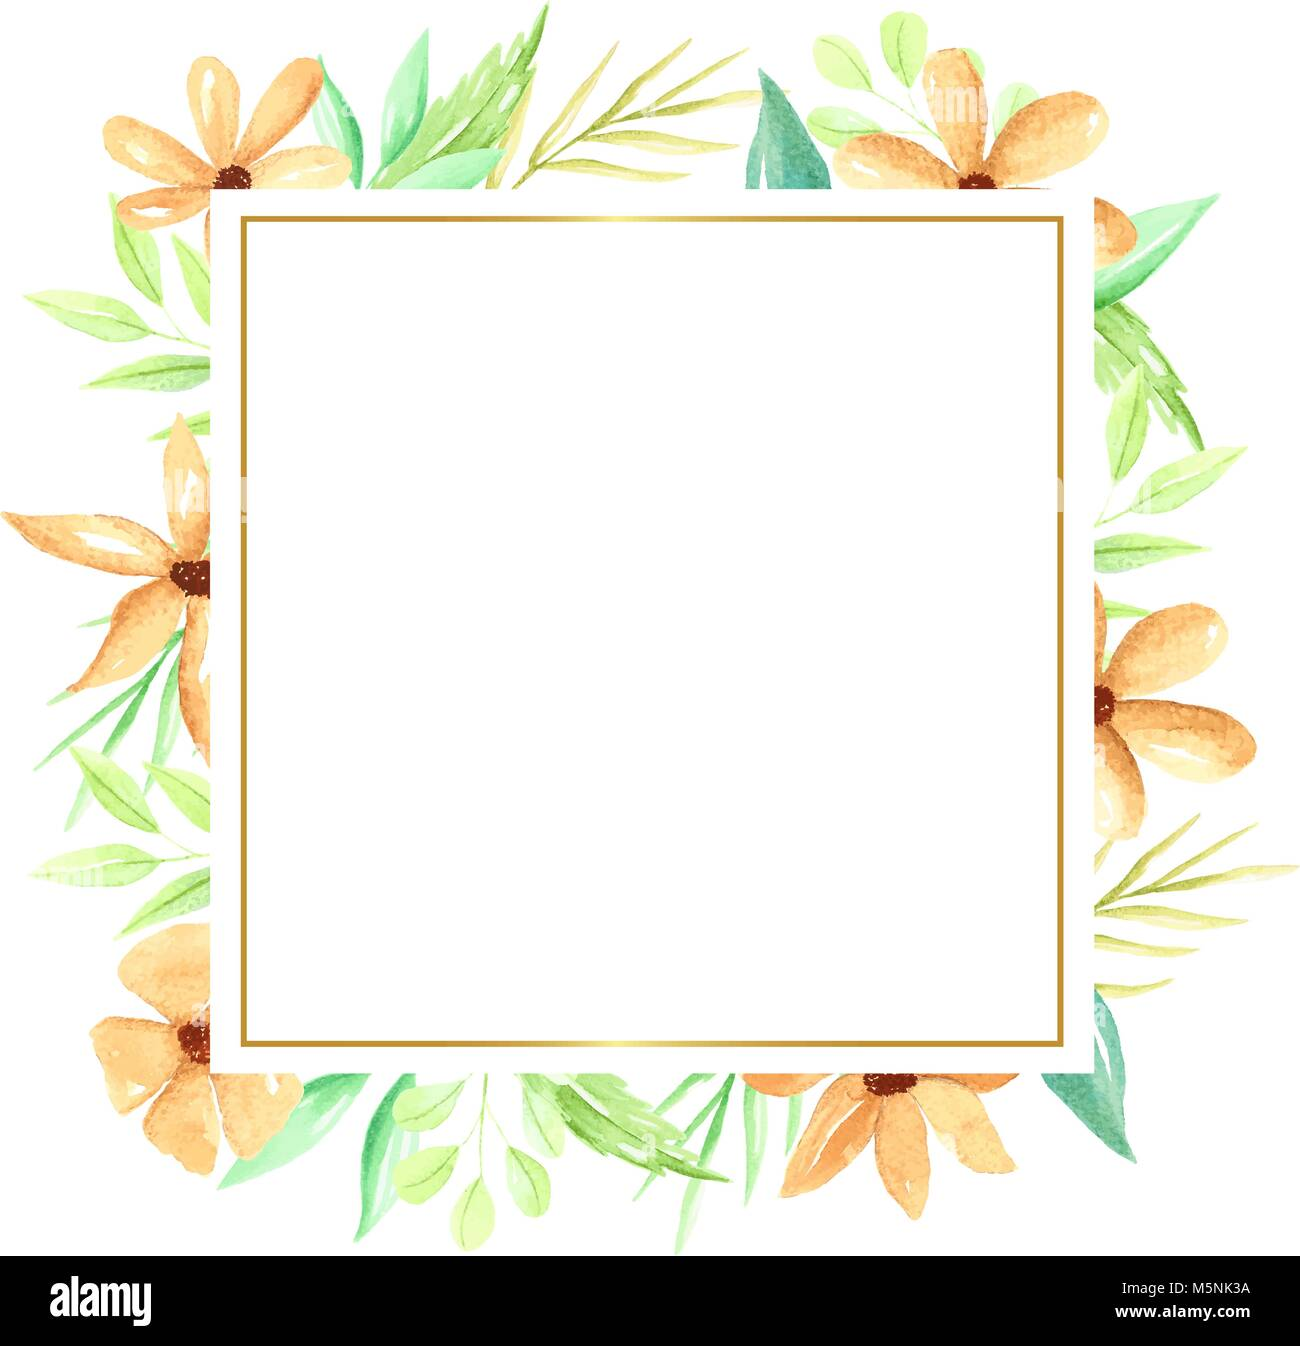 Square Frame With Hand Drawn Watercolor Flowers And Leaves Orange